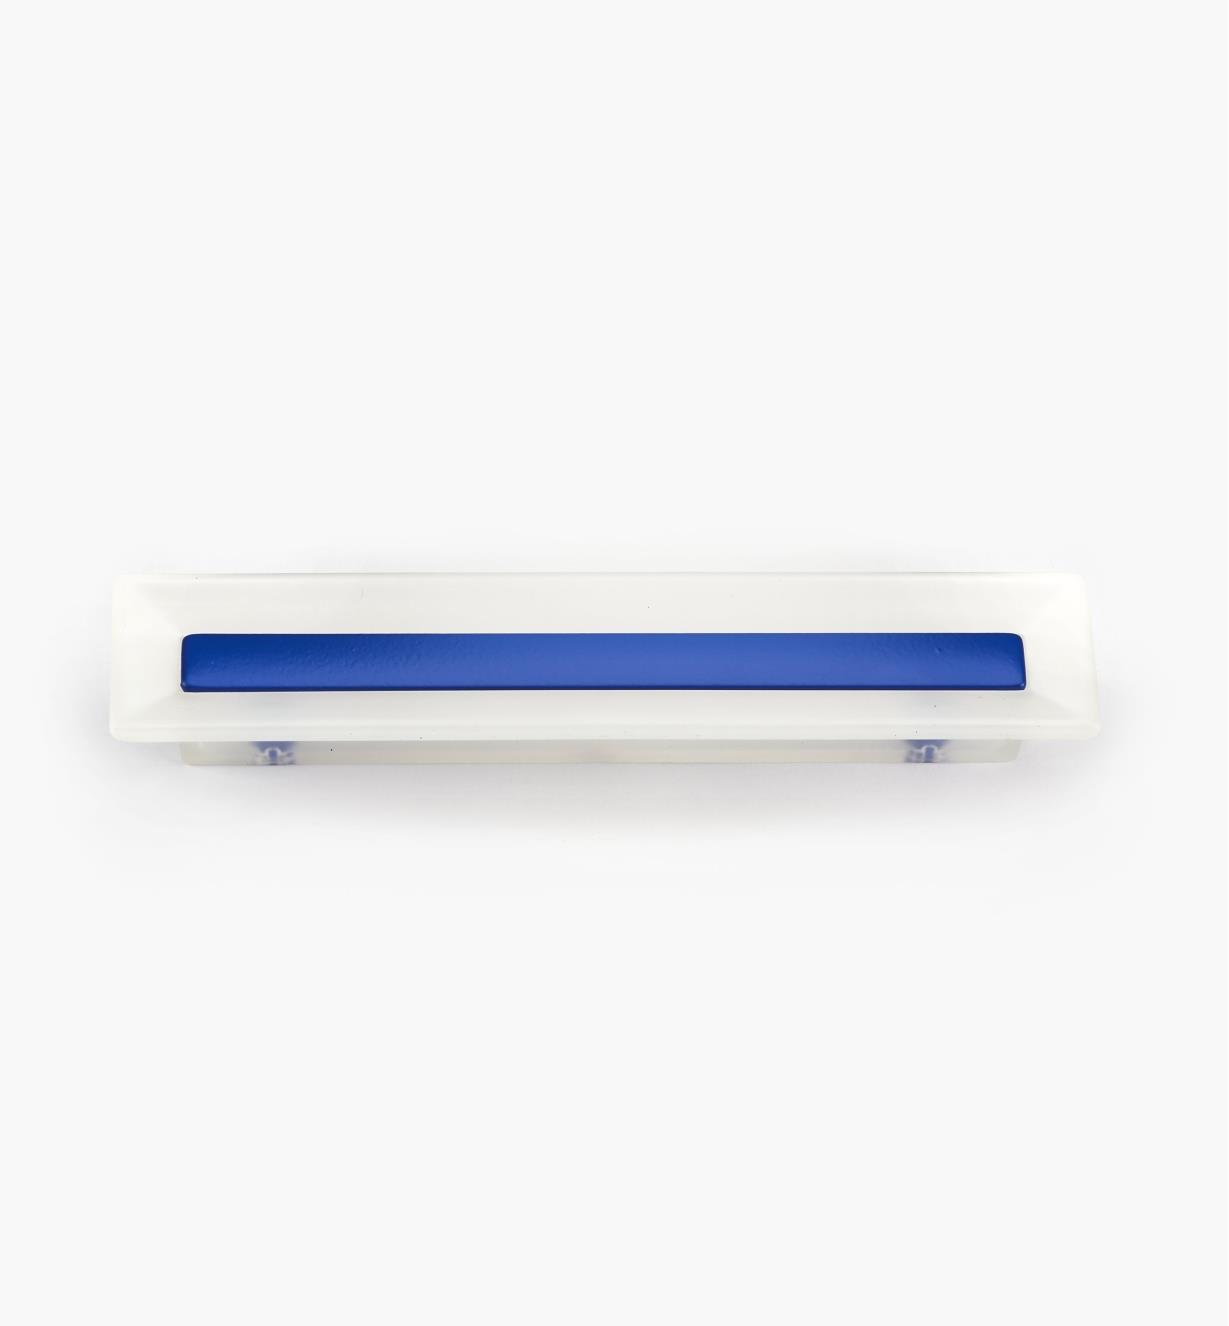 00W5413 - 96mm Bungee Handle, Blue